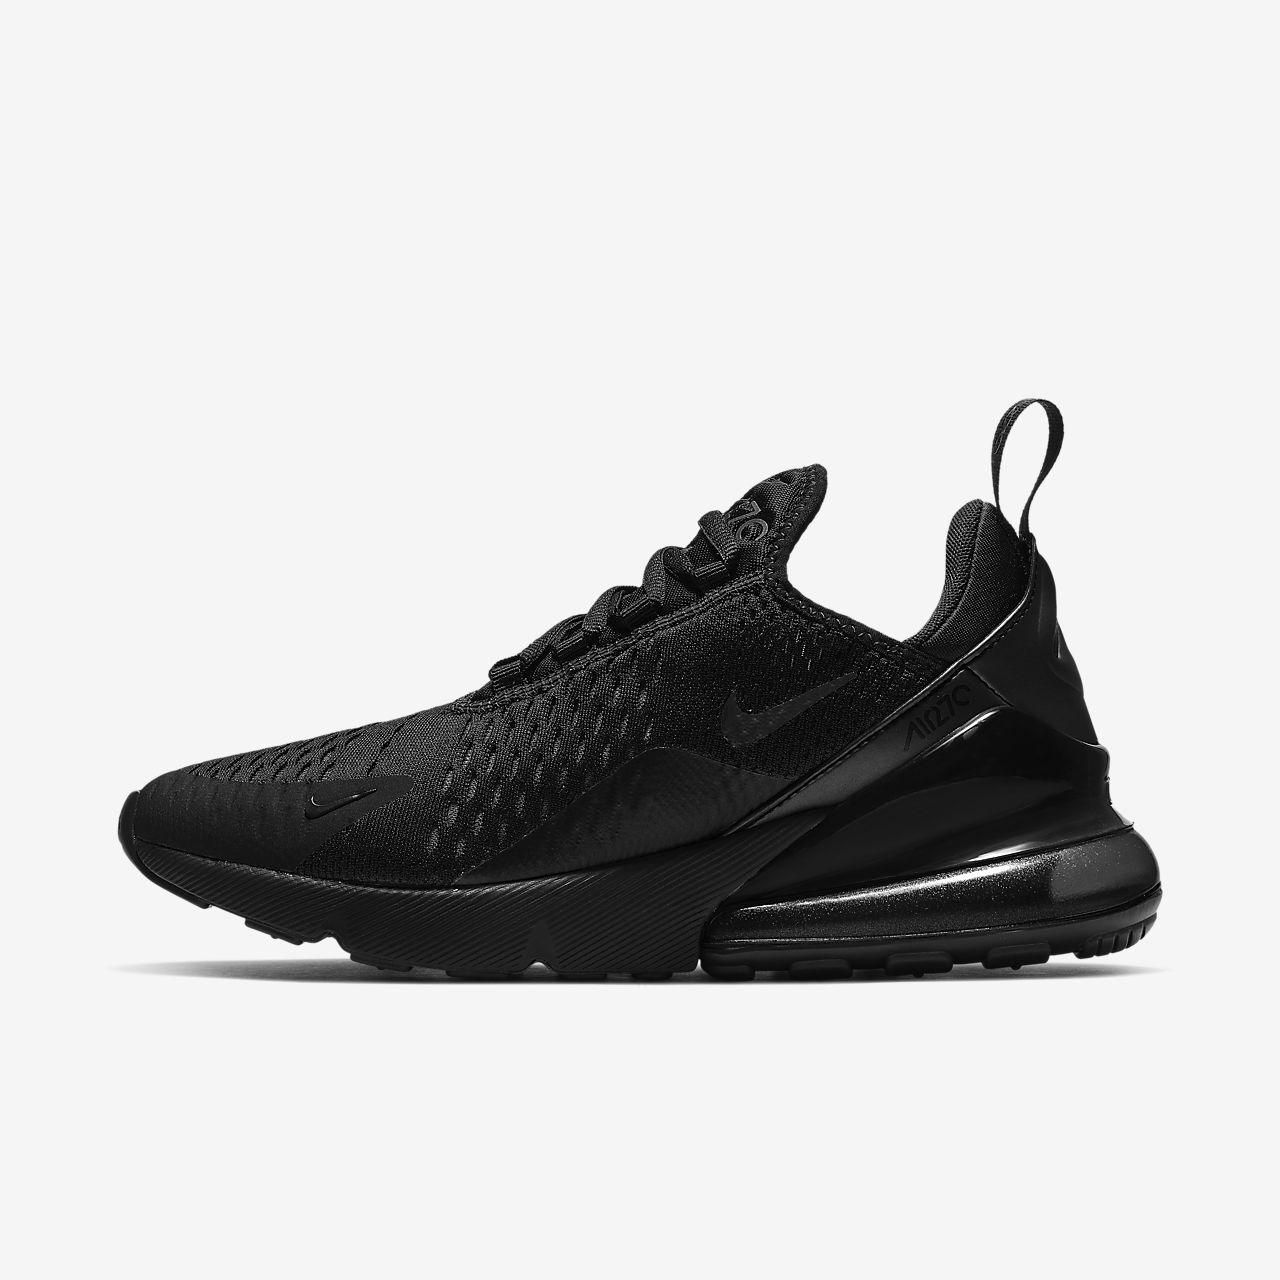 cheaper 84cd0 cd14b Nike Air Max 270